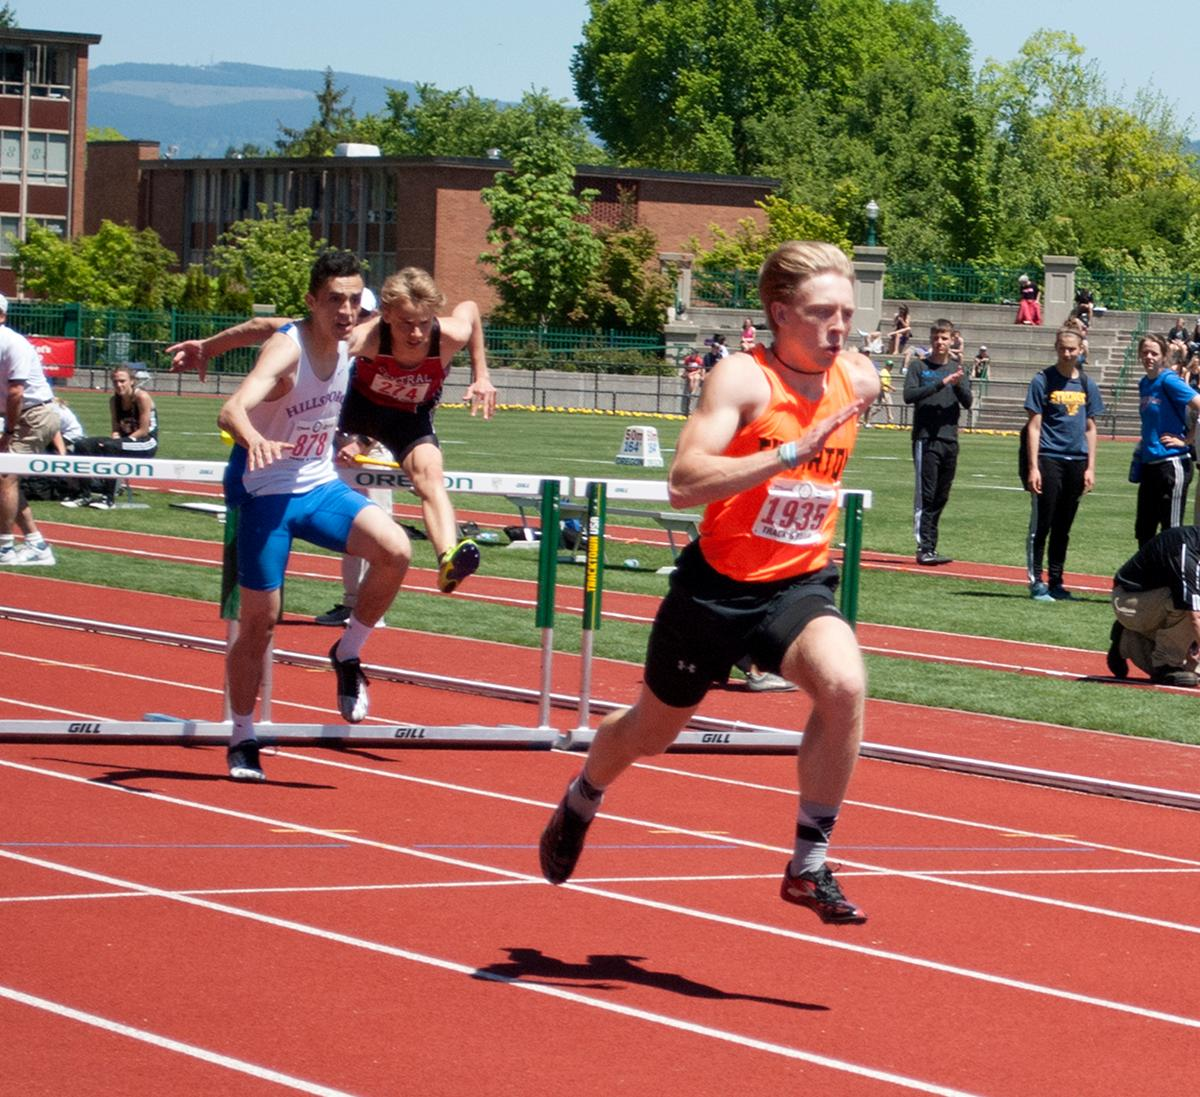 Brock Rogers of Silverton wins first place in the Boy's 5A 110m High Hurdle with a time of 14.89 at Hayward Field. Photo by Sheridan Kowta, Oregon News Lab